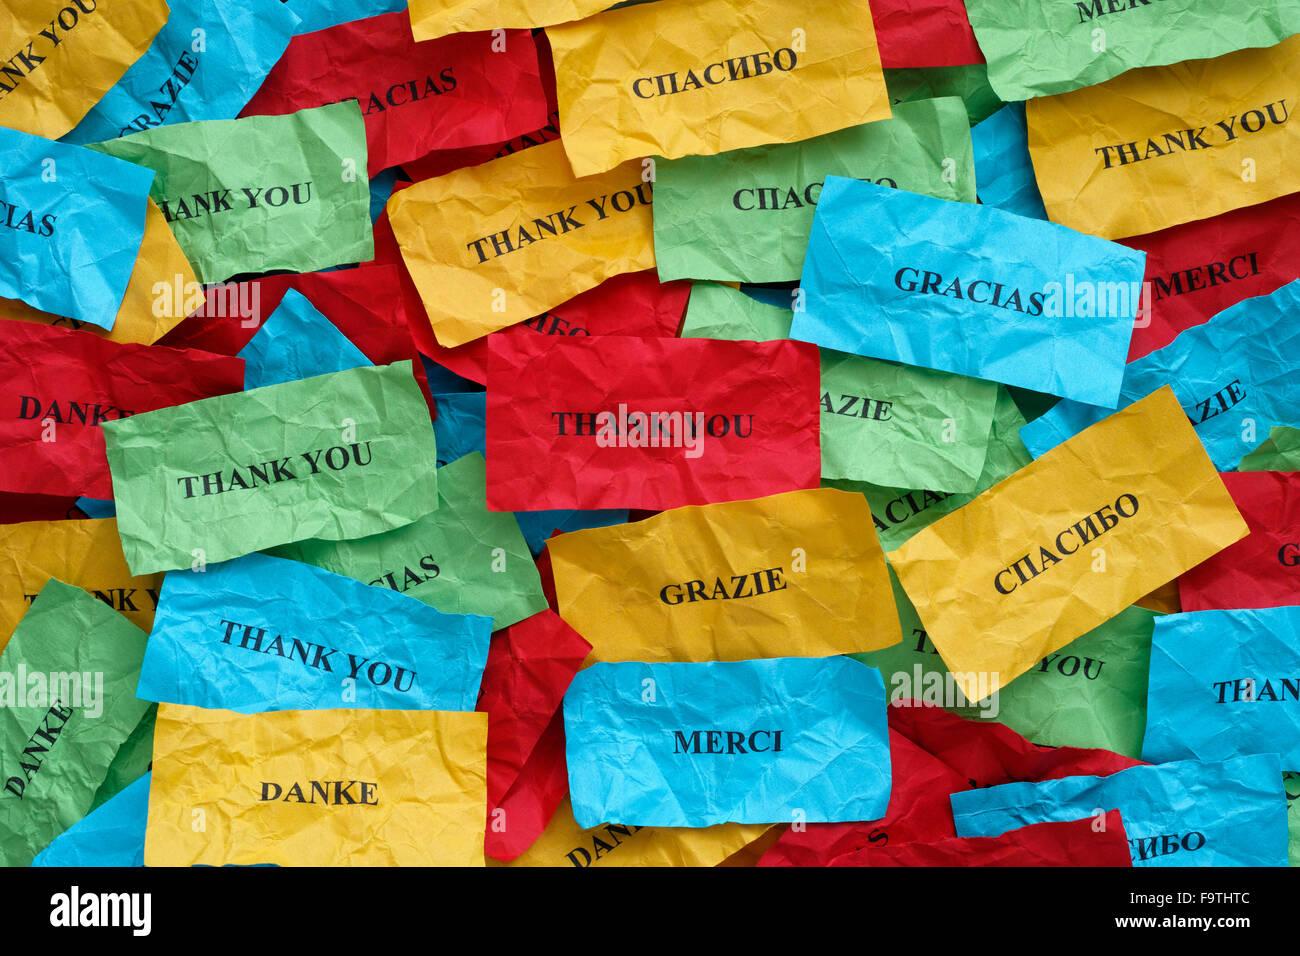 Thank you in many languages on crumpled colorful pieces of paper. - Stock Image